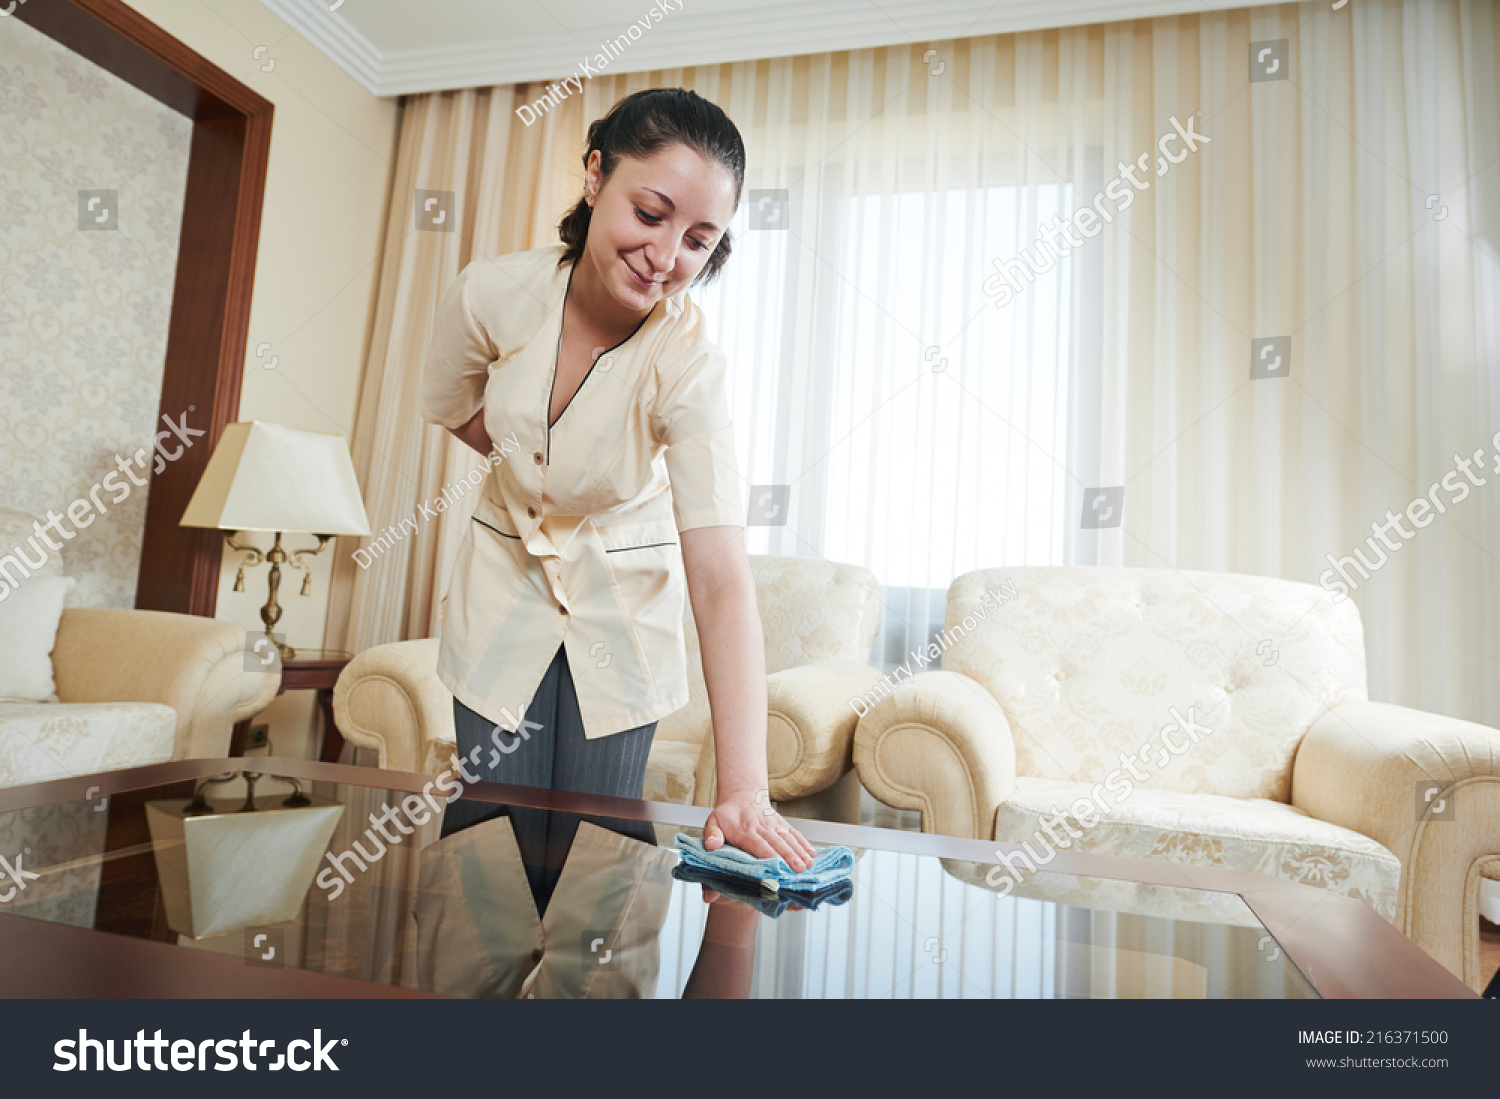 Hotel service. female housekeeping worker with cleaning table from dust in room #216371500